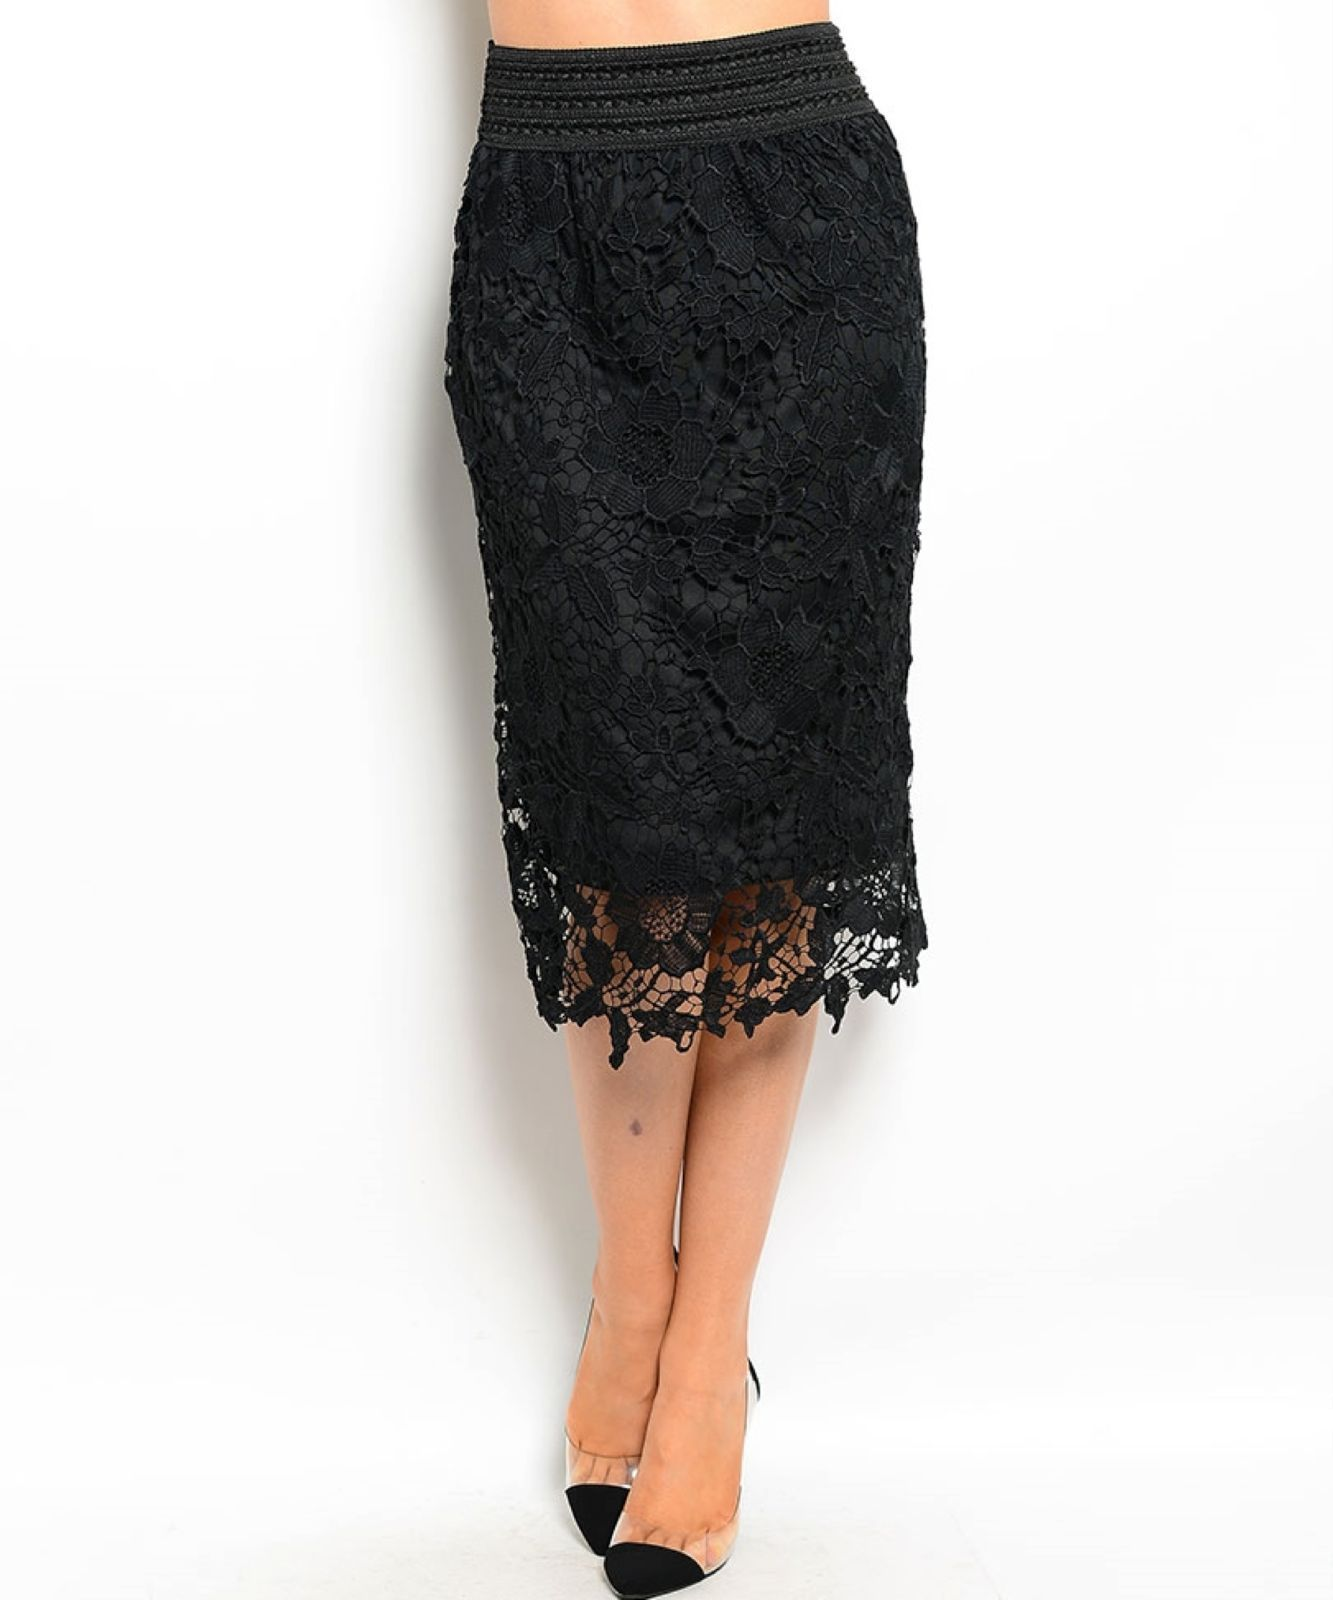 Chic Crochet Lace Lined Jr Skirt, Cocktail Club Party, Black, Ivory or White - B